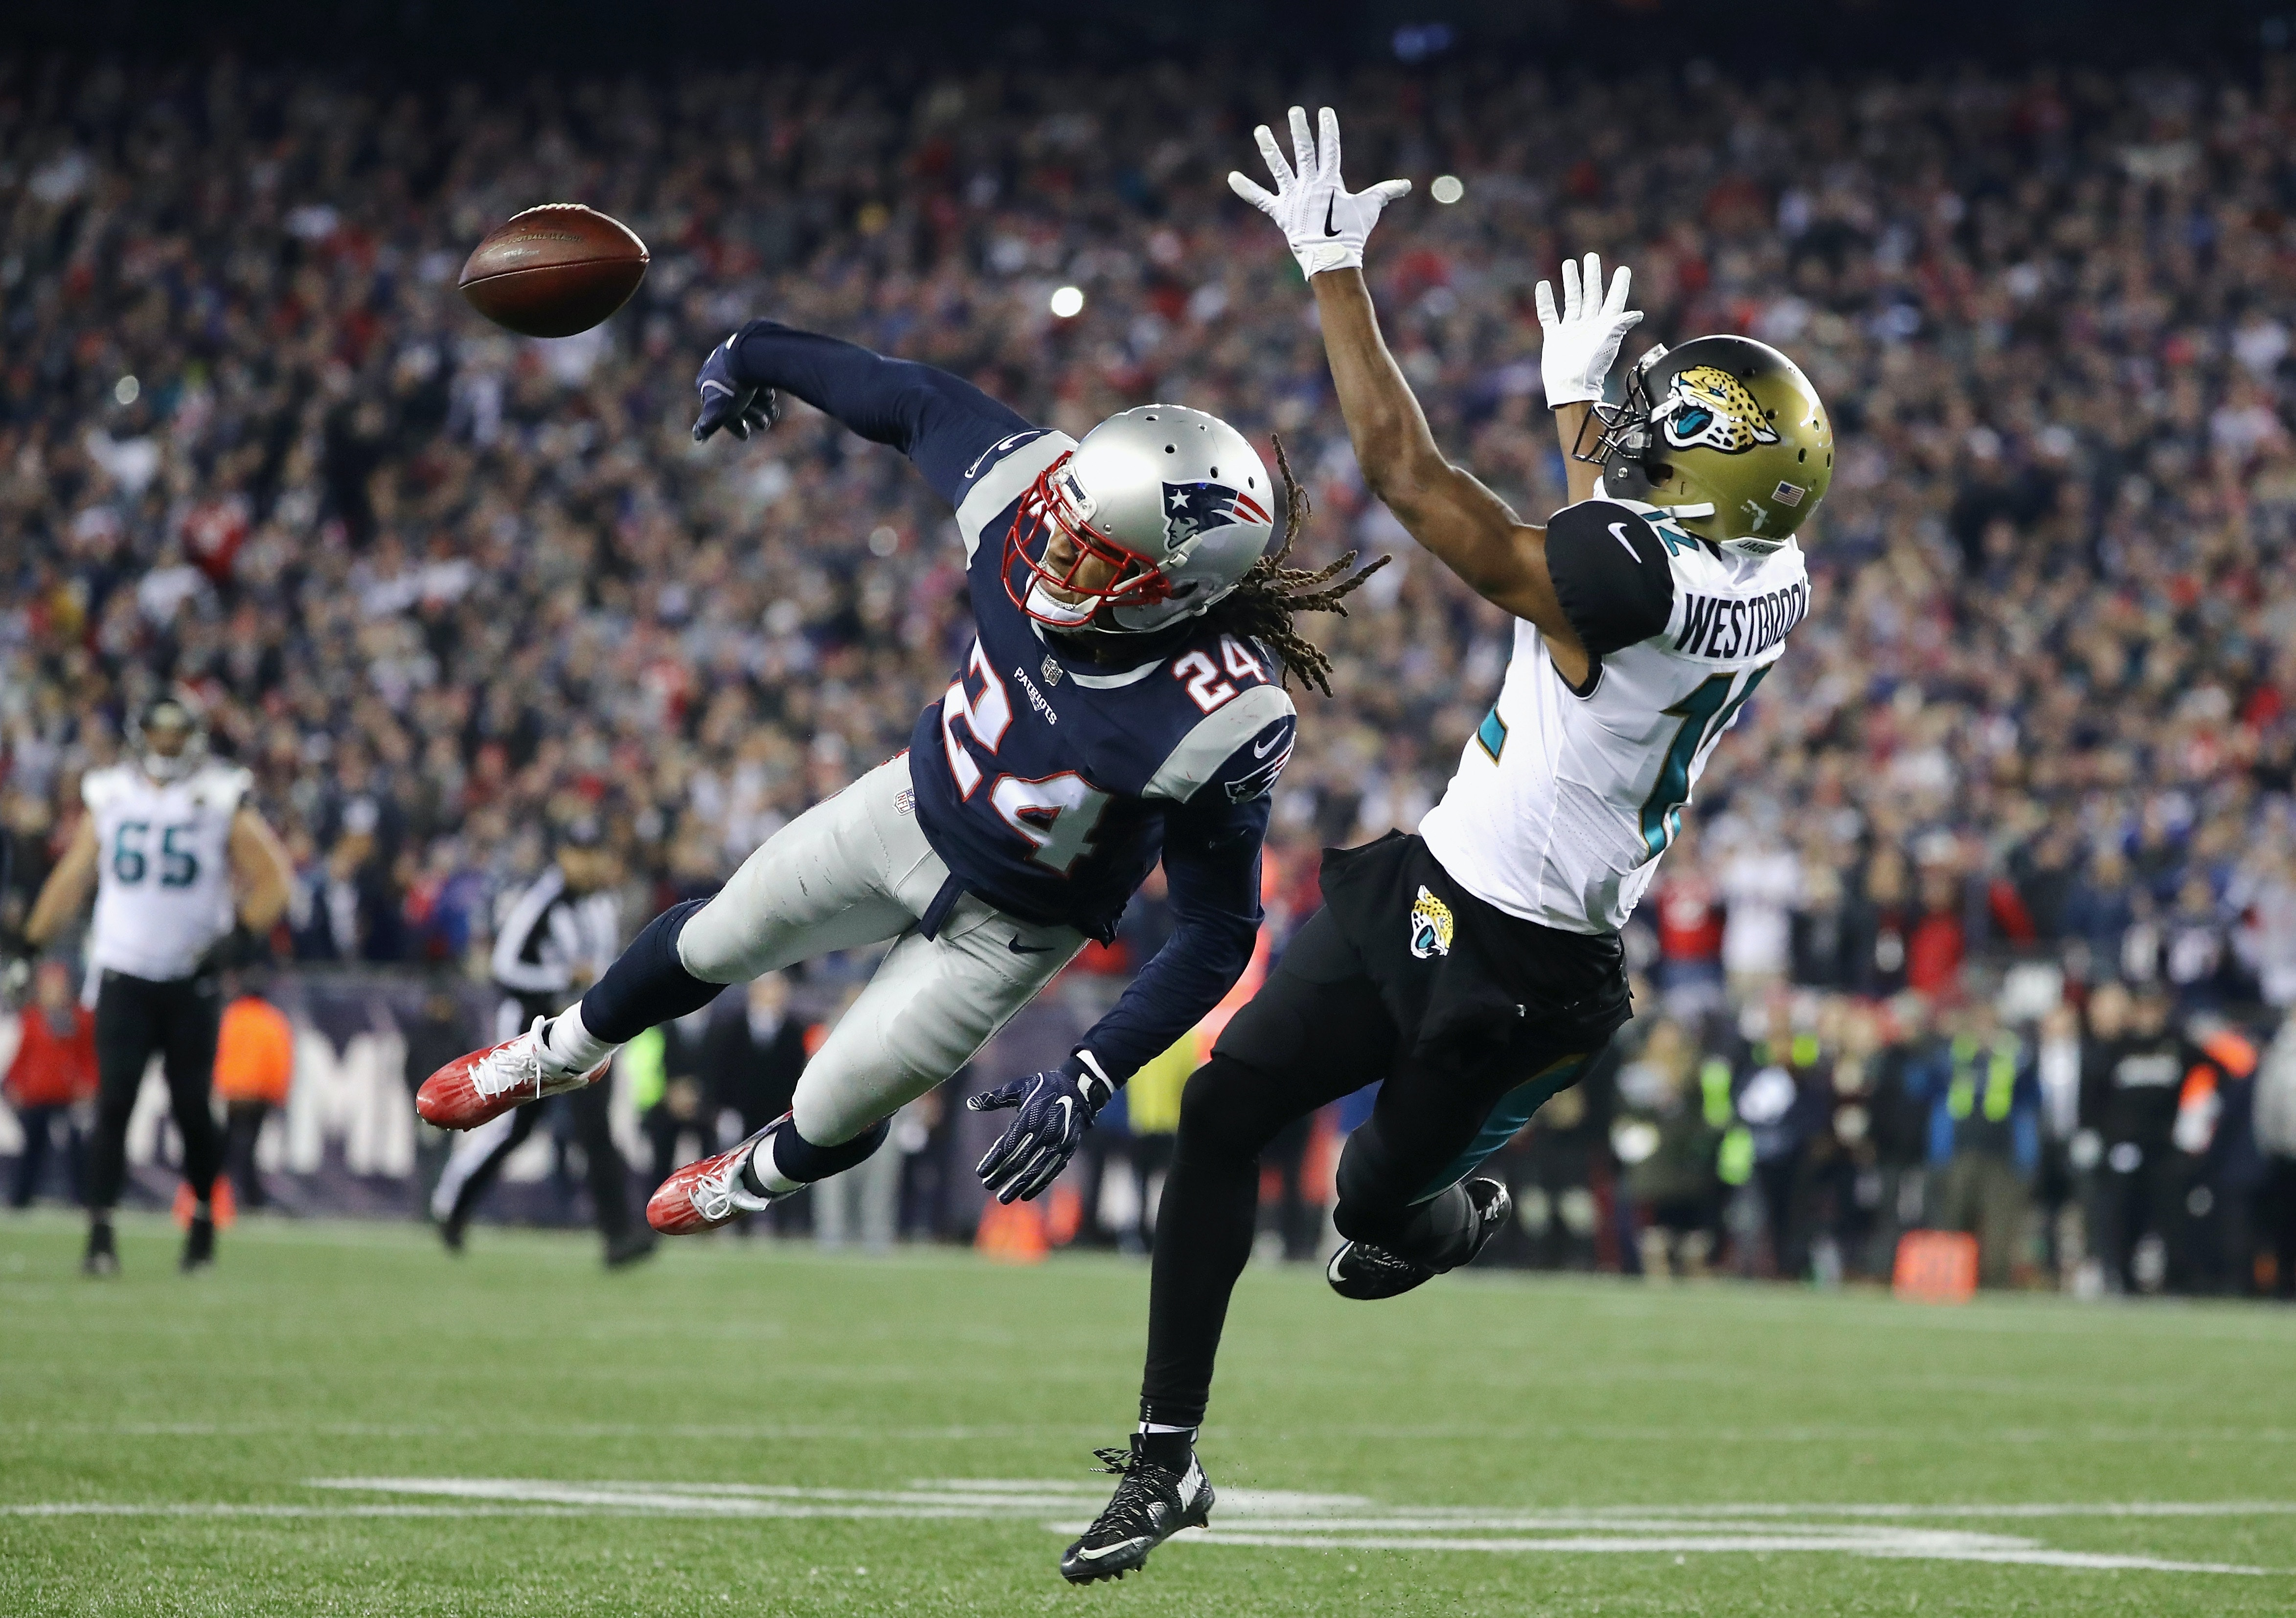 Can You Watch The Super Bowl Without Cable? There Are Many